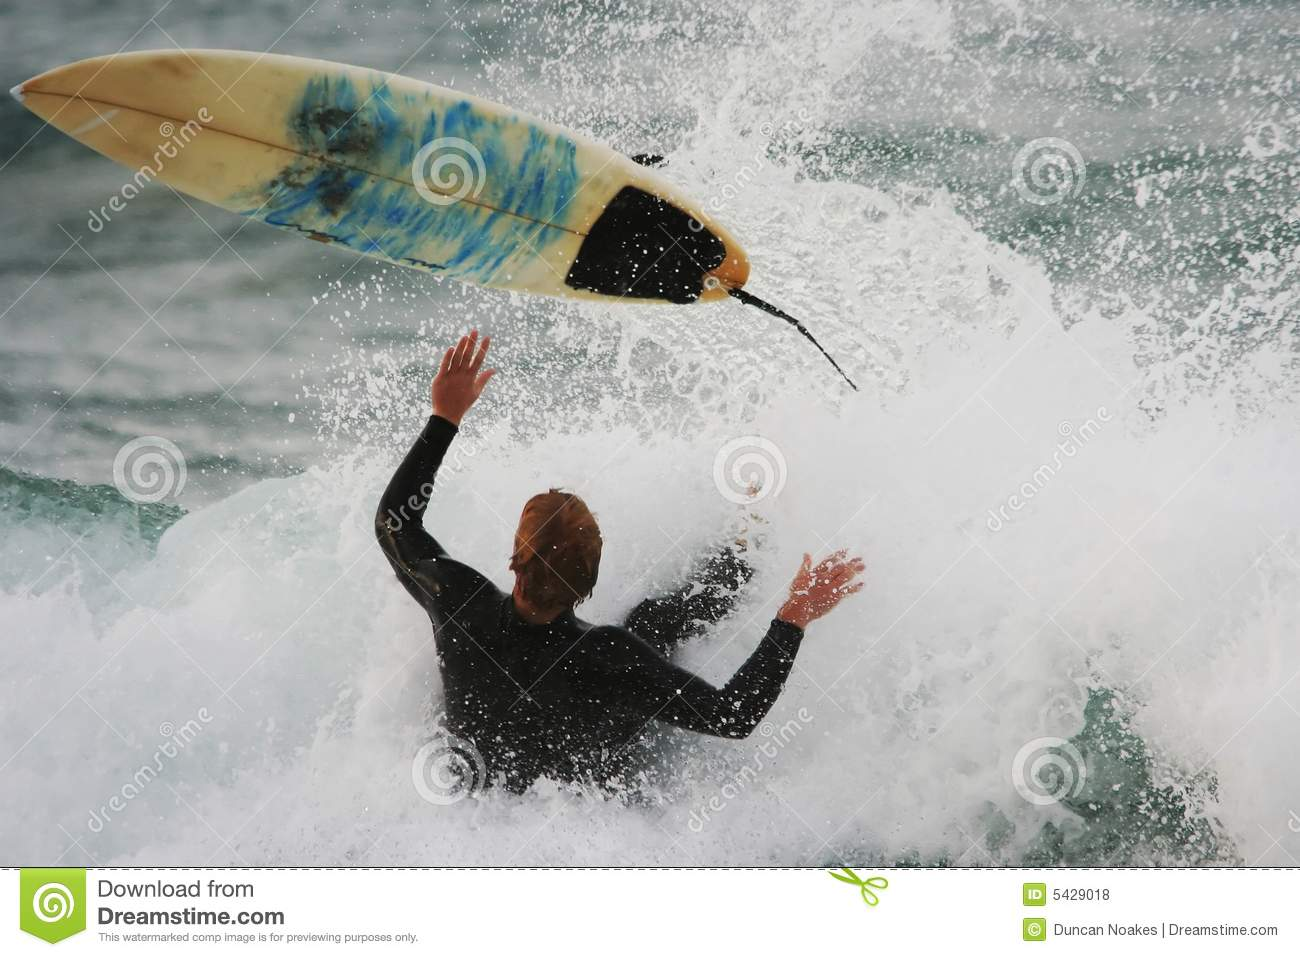 Wipeout que practica surf